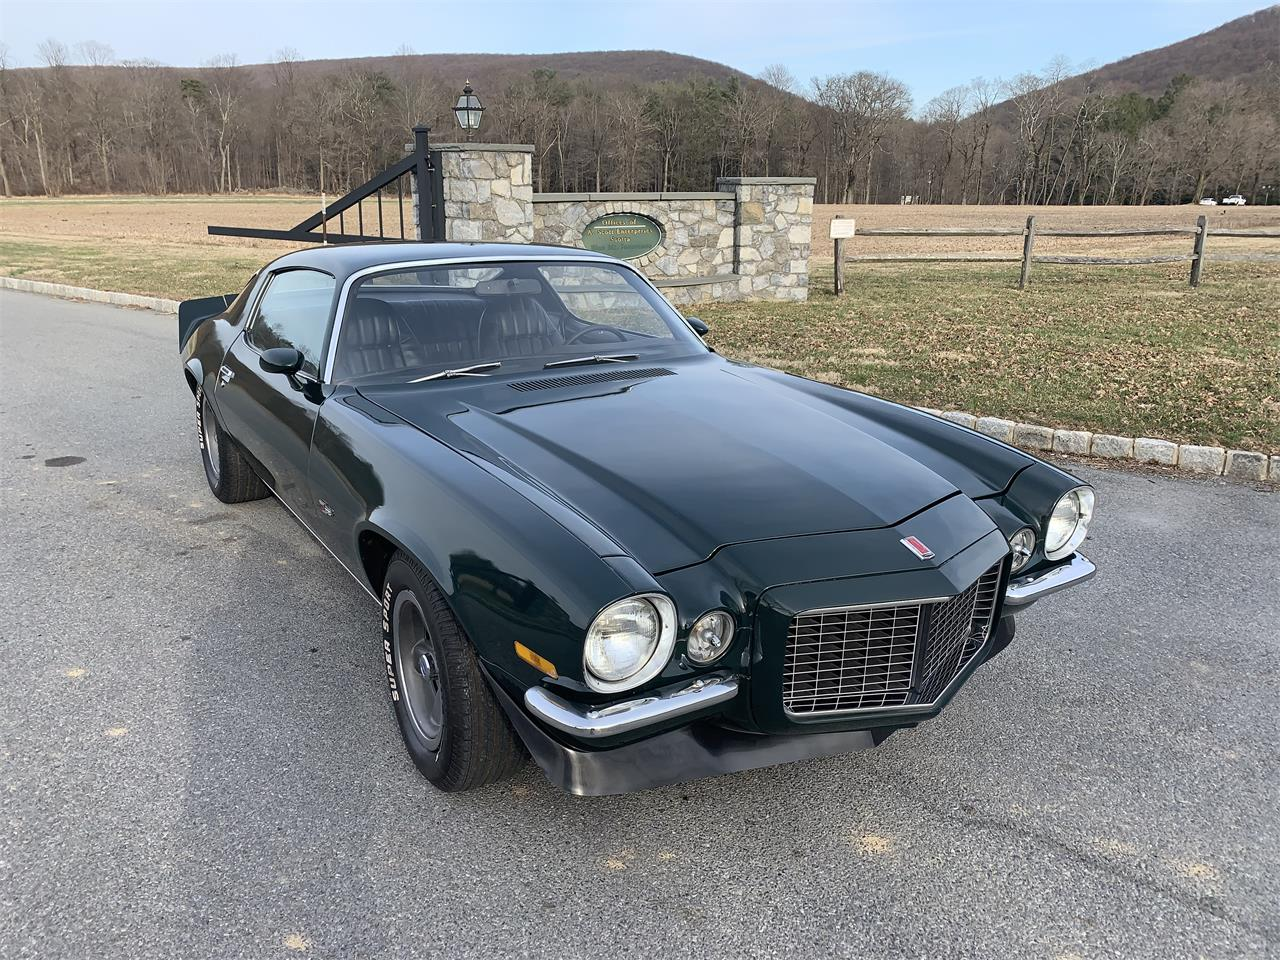 Large Picture of Classic '73 Camaro Z28 - $29,900.00 Offered by a Private Seller - PZBW